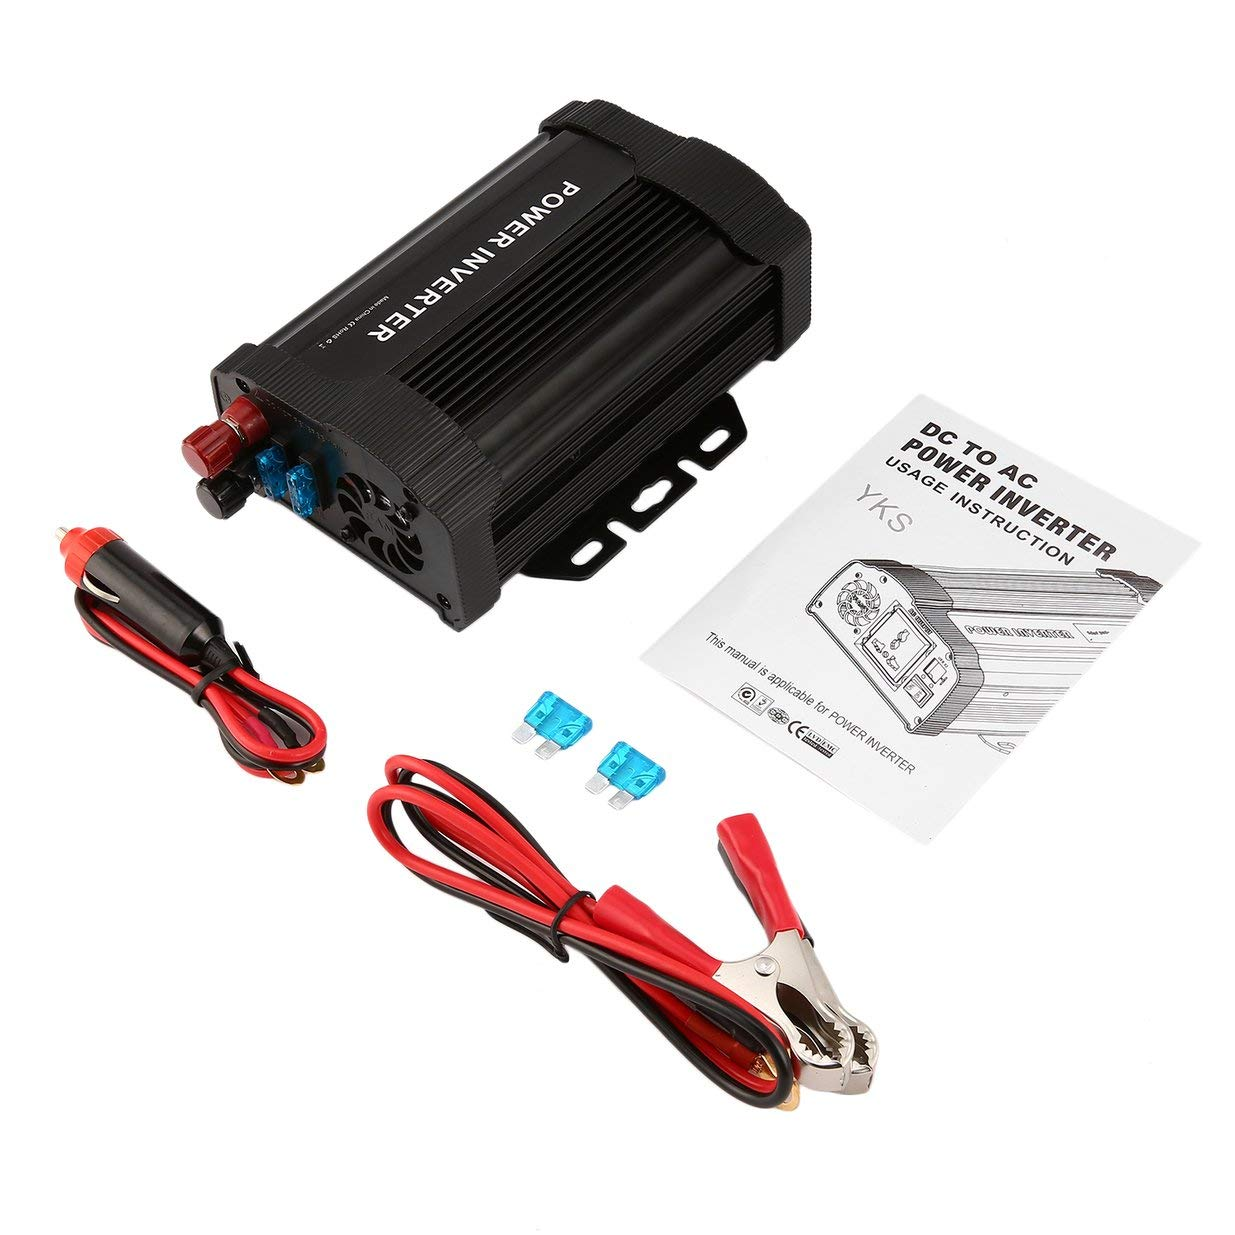 banbie8409 P-Series Car Power Inverter DC12V to AC110V Modified Charger Power Converter